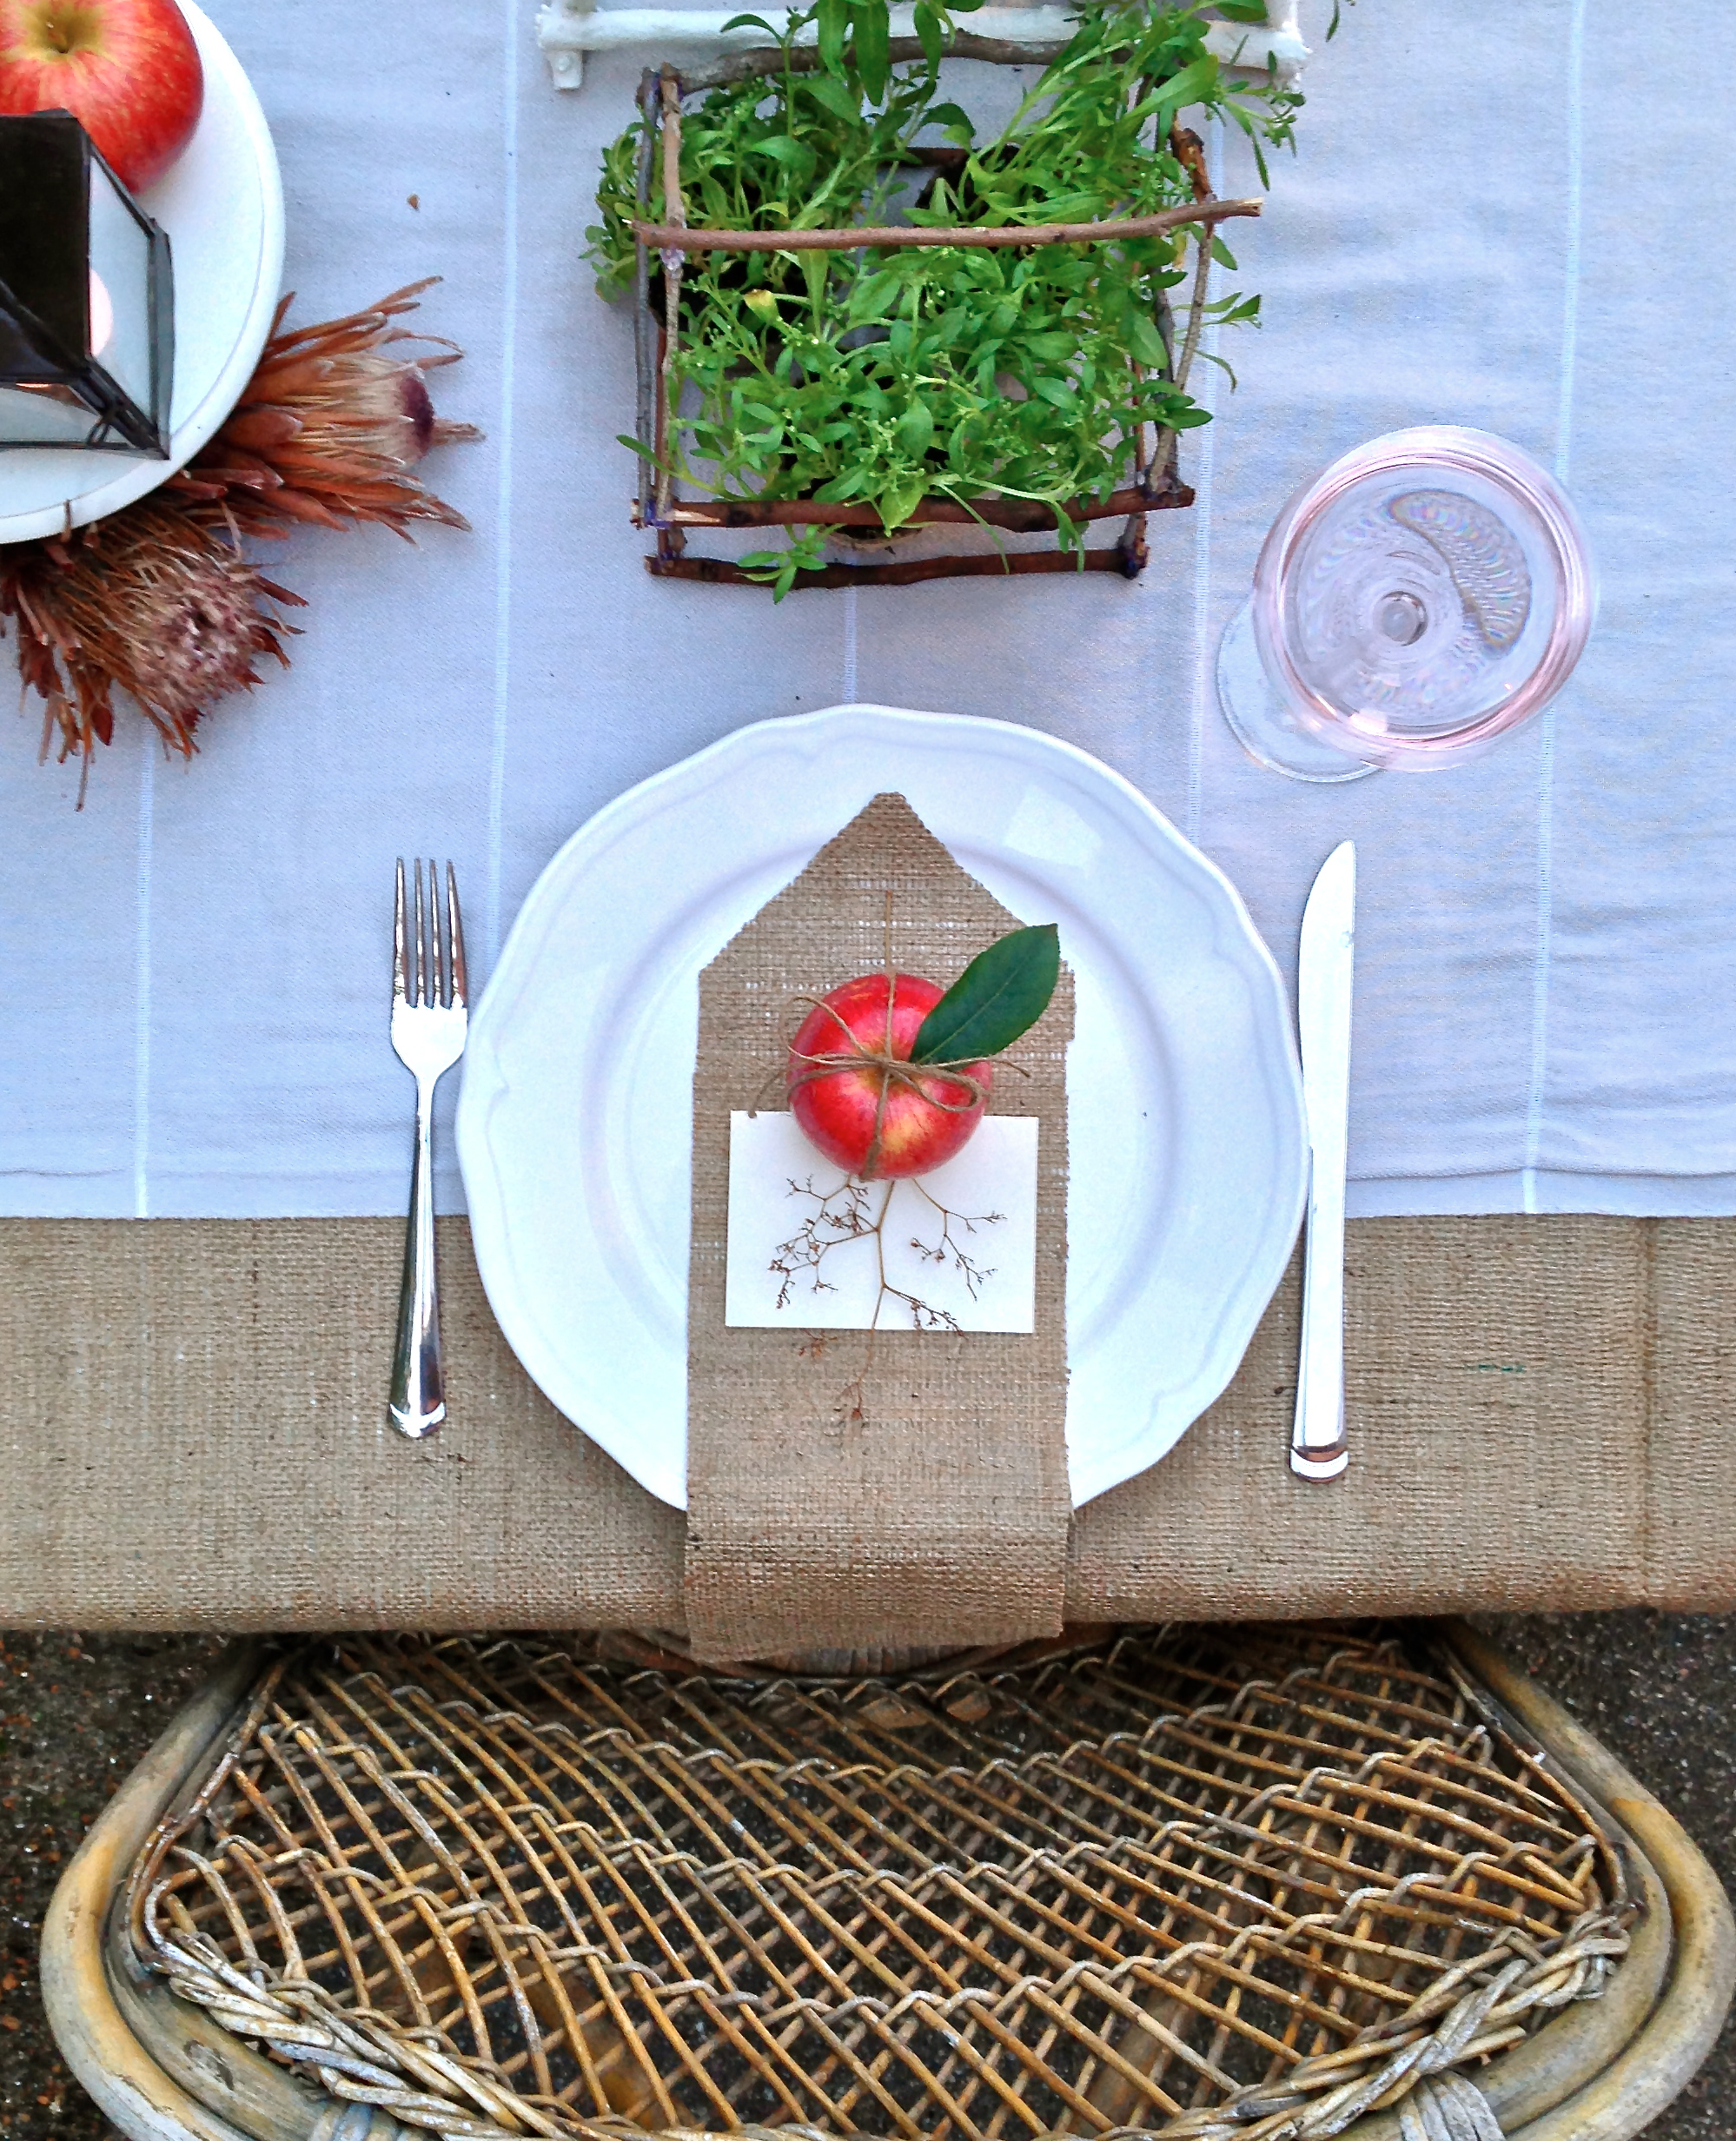 Outdoor Dinner Party via Delighted Magazine